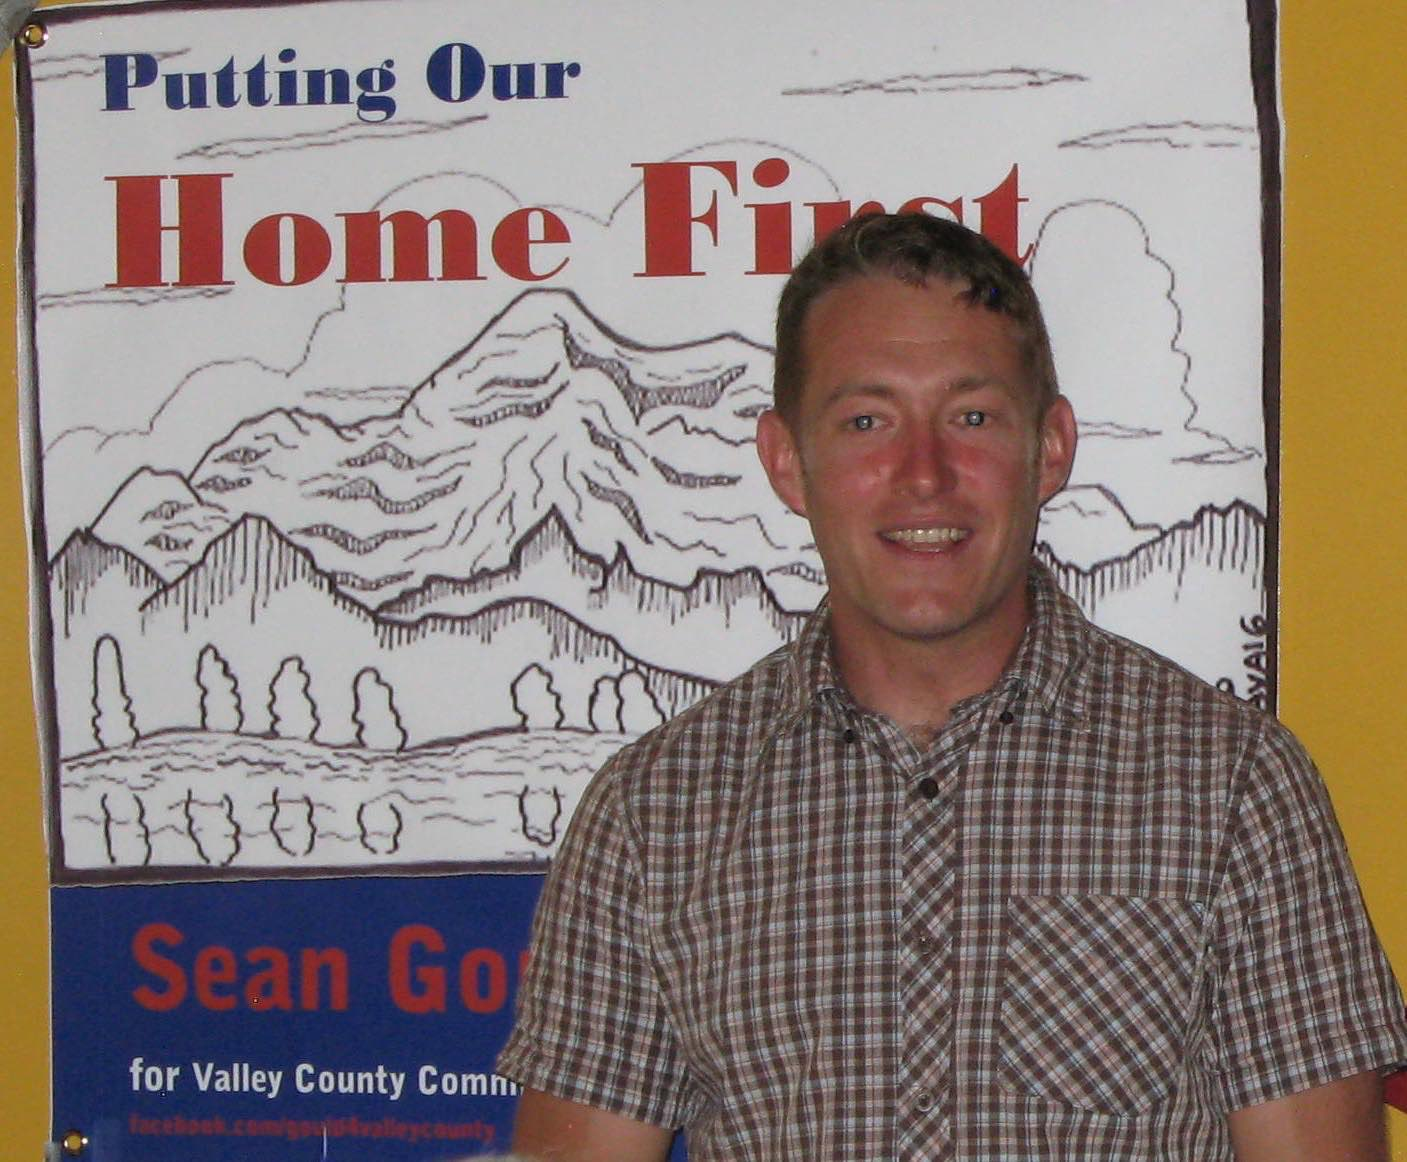 Sean Gould, Valley County Commissioner Candidate